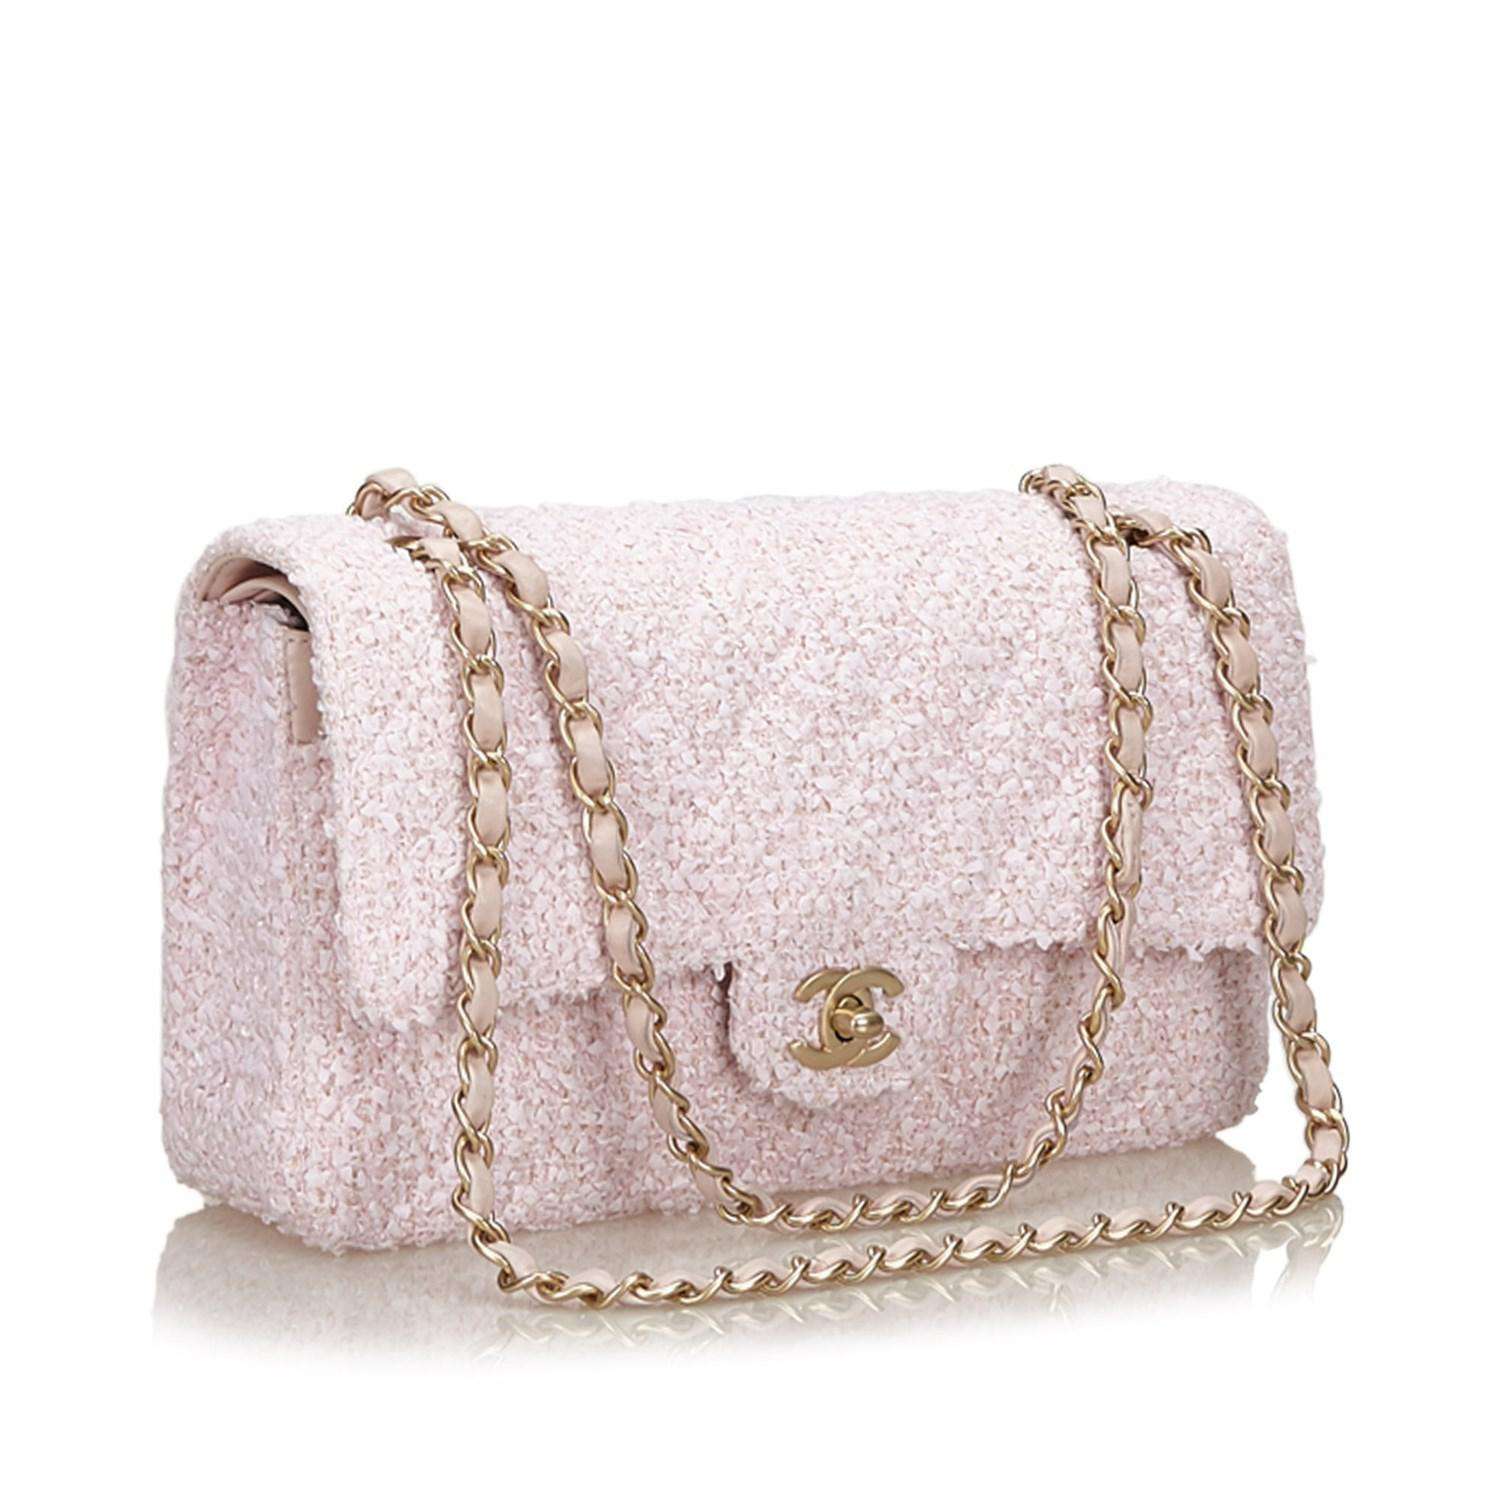 8f087c29f9a6 Chanel Small Classic Tweed Double Flap Bag in Pink - Lyst